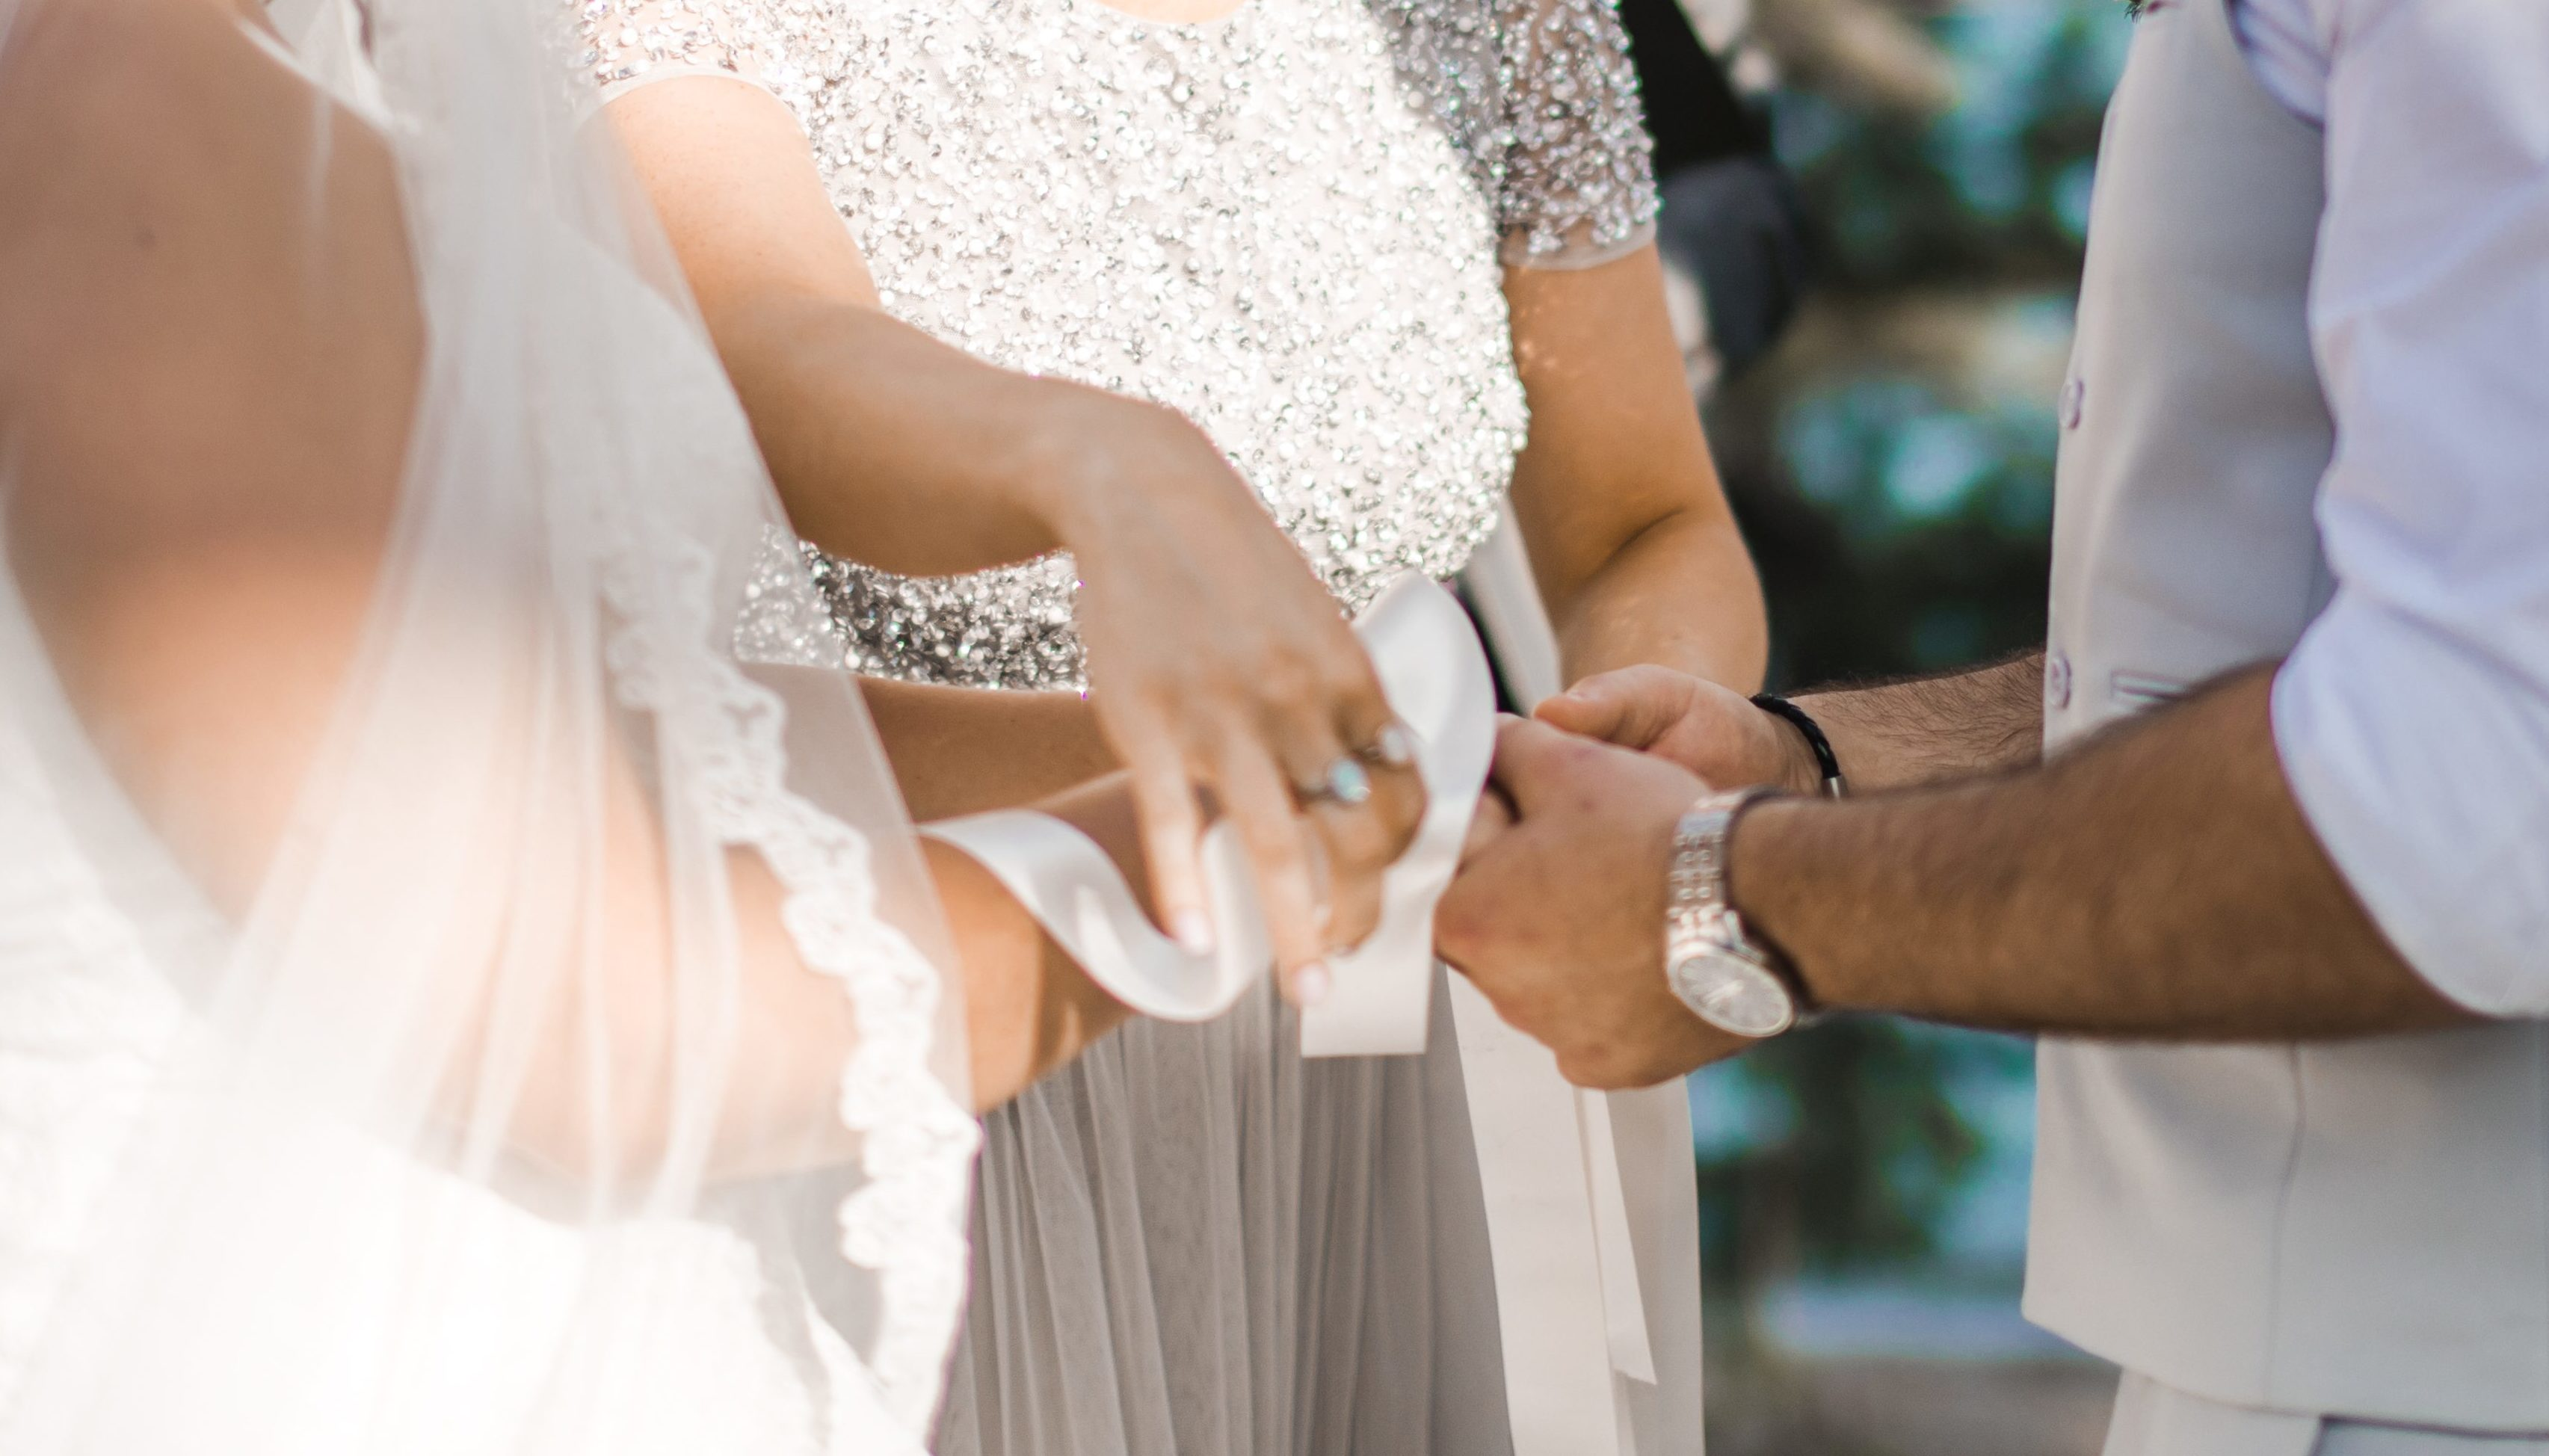 The hand-fasting ceremony